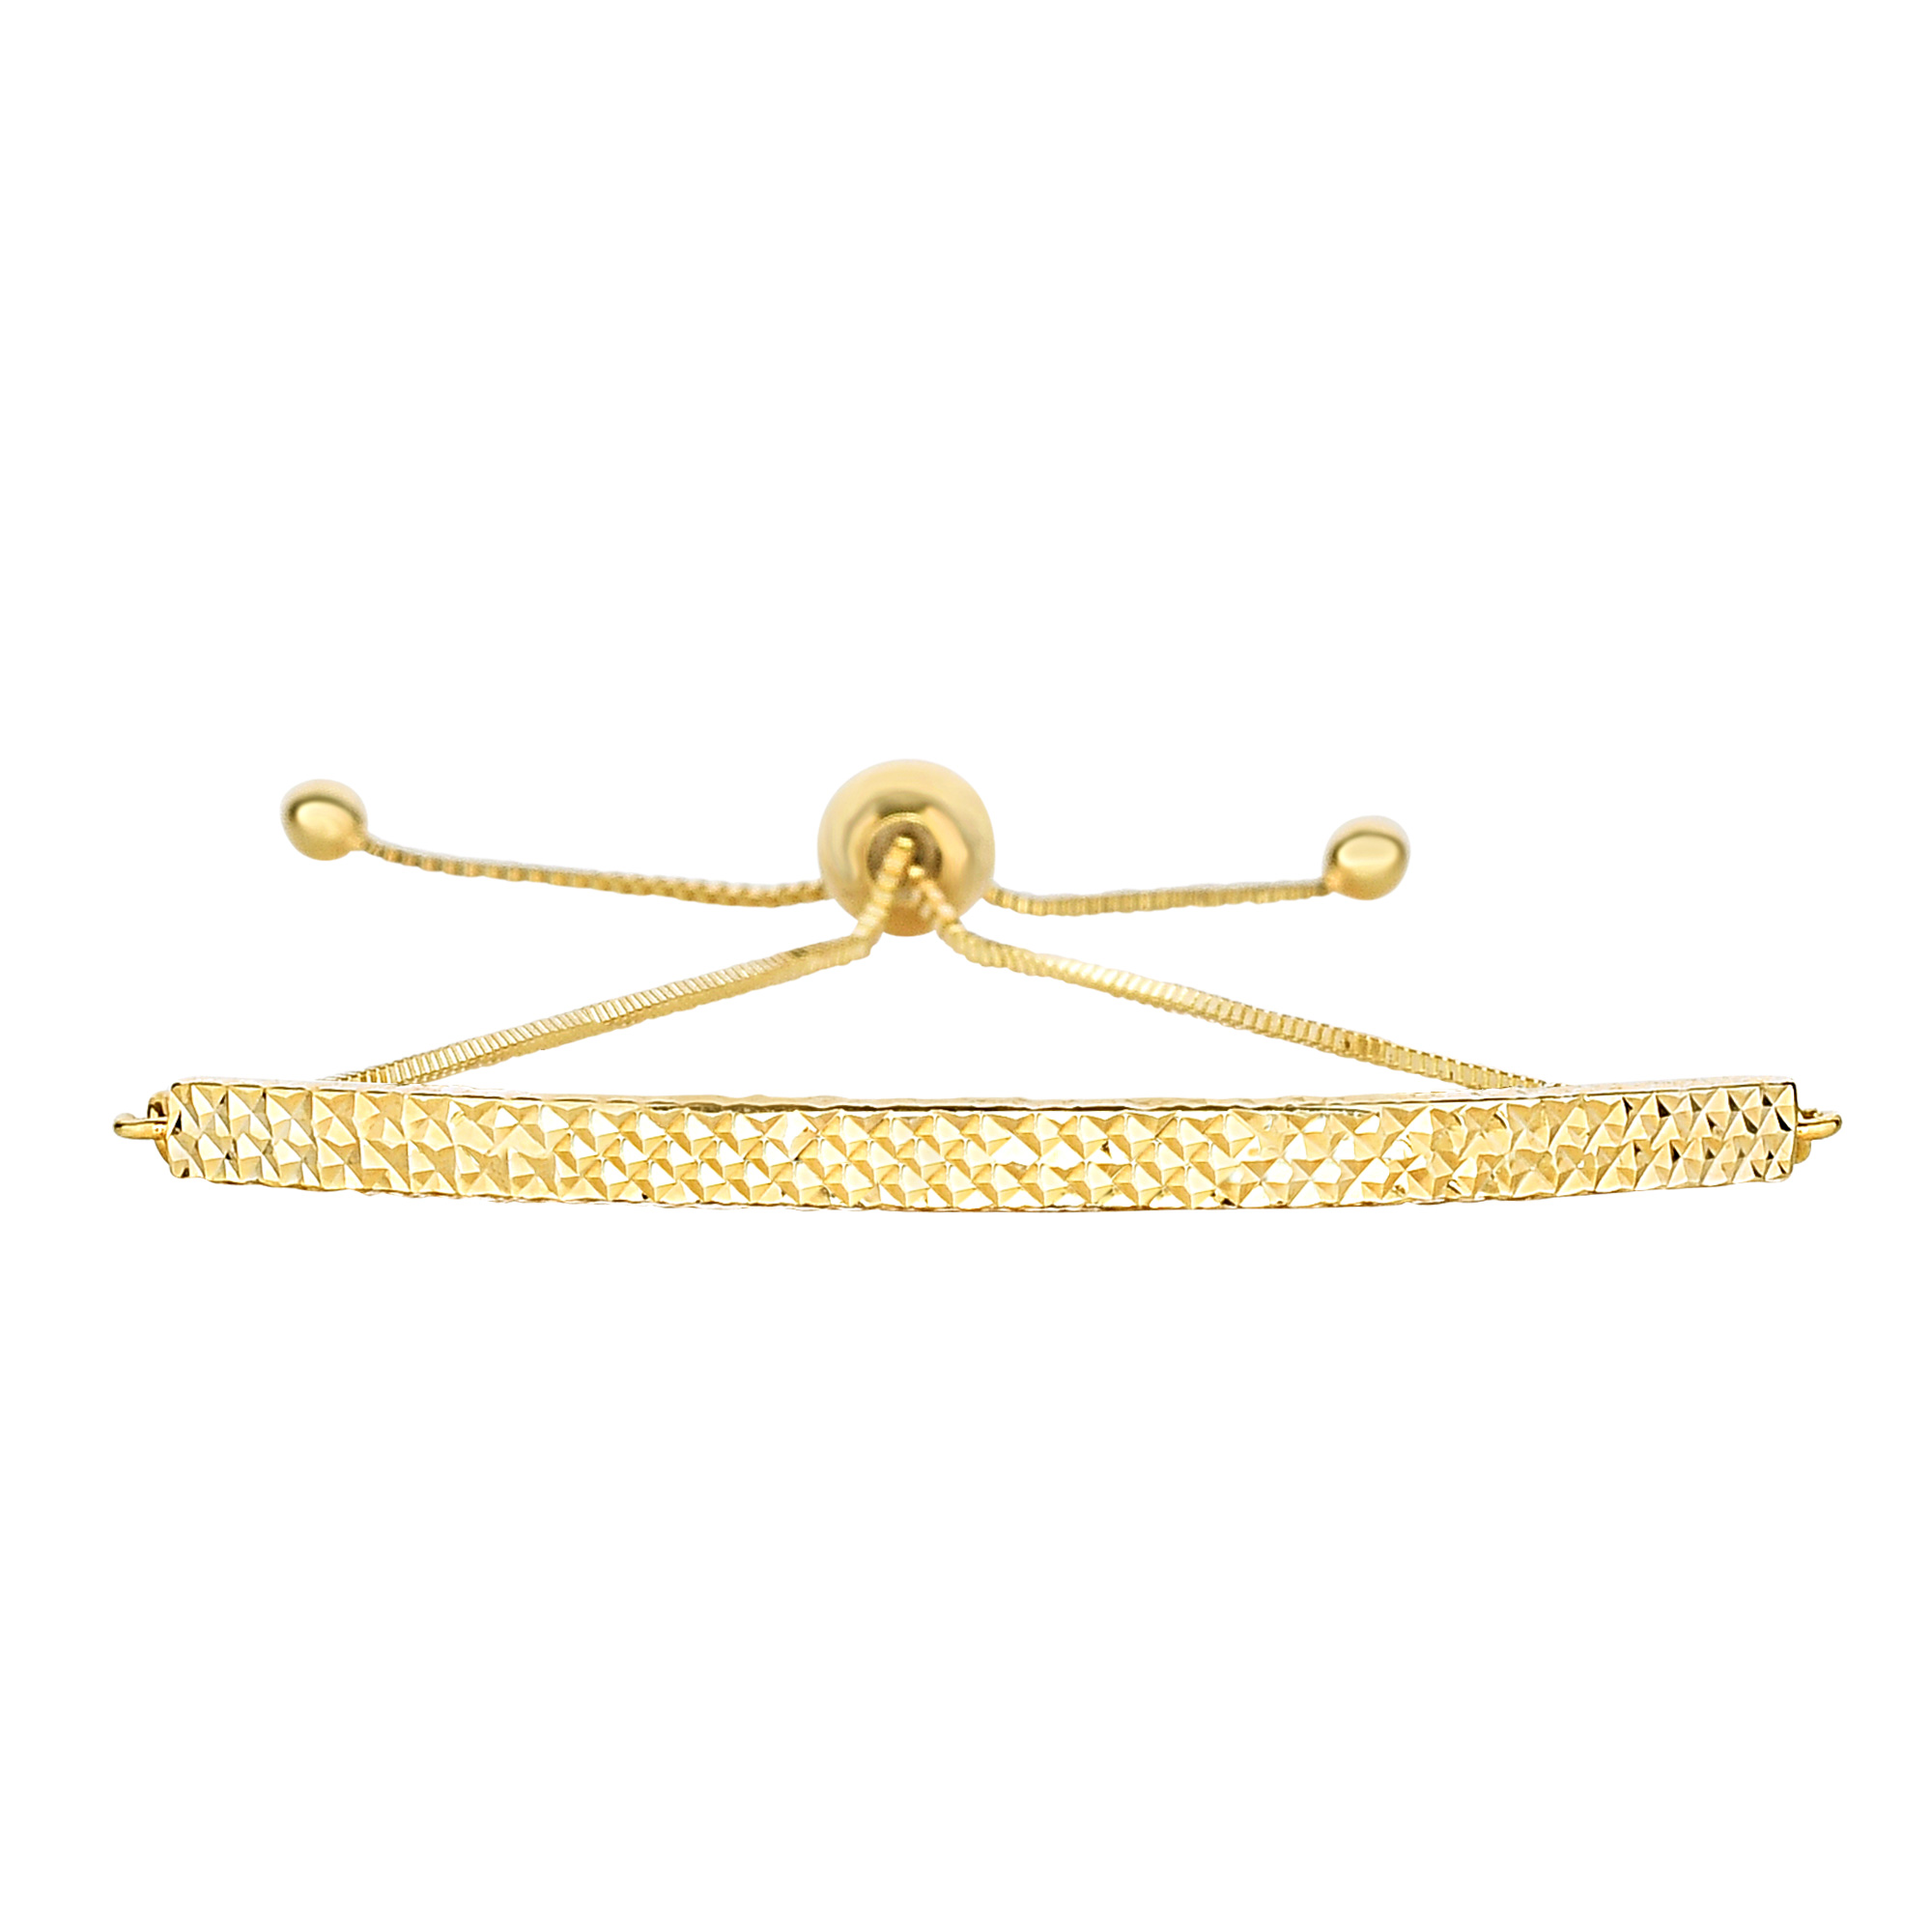 14K Yellow Gold Diamond Cut Curved Bar Element Anchored on Box Chain Adjustable Bracelet , 9.25  Crafted in 14K gold, Our BOLO friendship line of bracelets are stylish easy to wear and a one of a kind collection. Meticulously executed in high quality finish 14K gold, these iconic bracelets are easily adjusted to fit any wrist. Each unique style of our Friendship collection looks beautiful worn as one piece alone or stacked with multiple styles for a layered and modern look. The bracelet comes in an elegant jewelry gift box, perfect for any gift giving occasion.